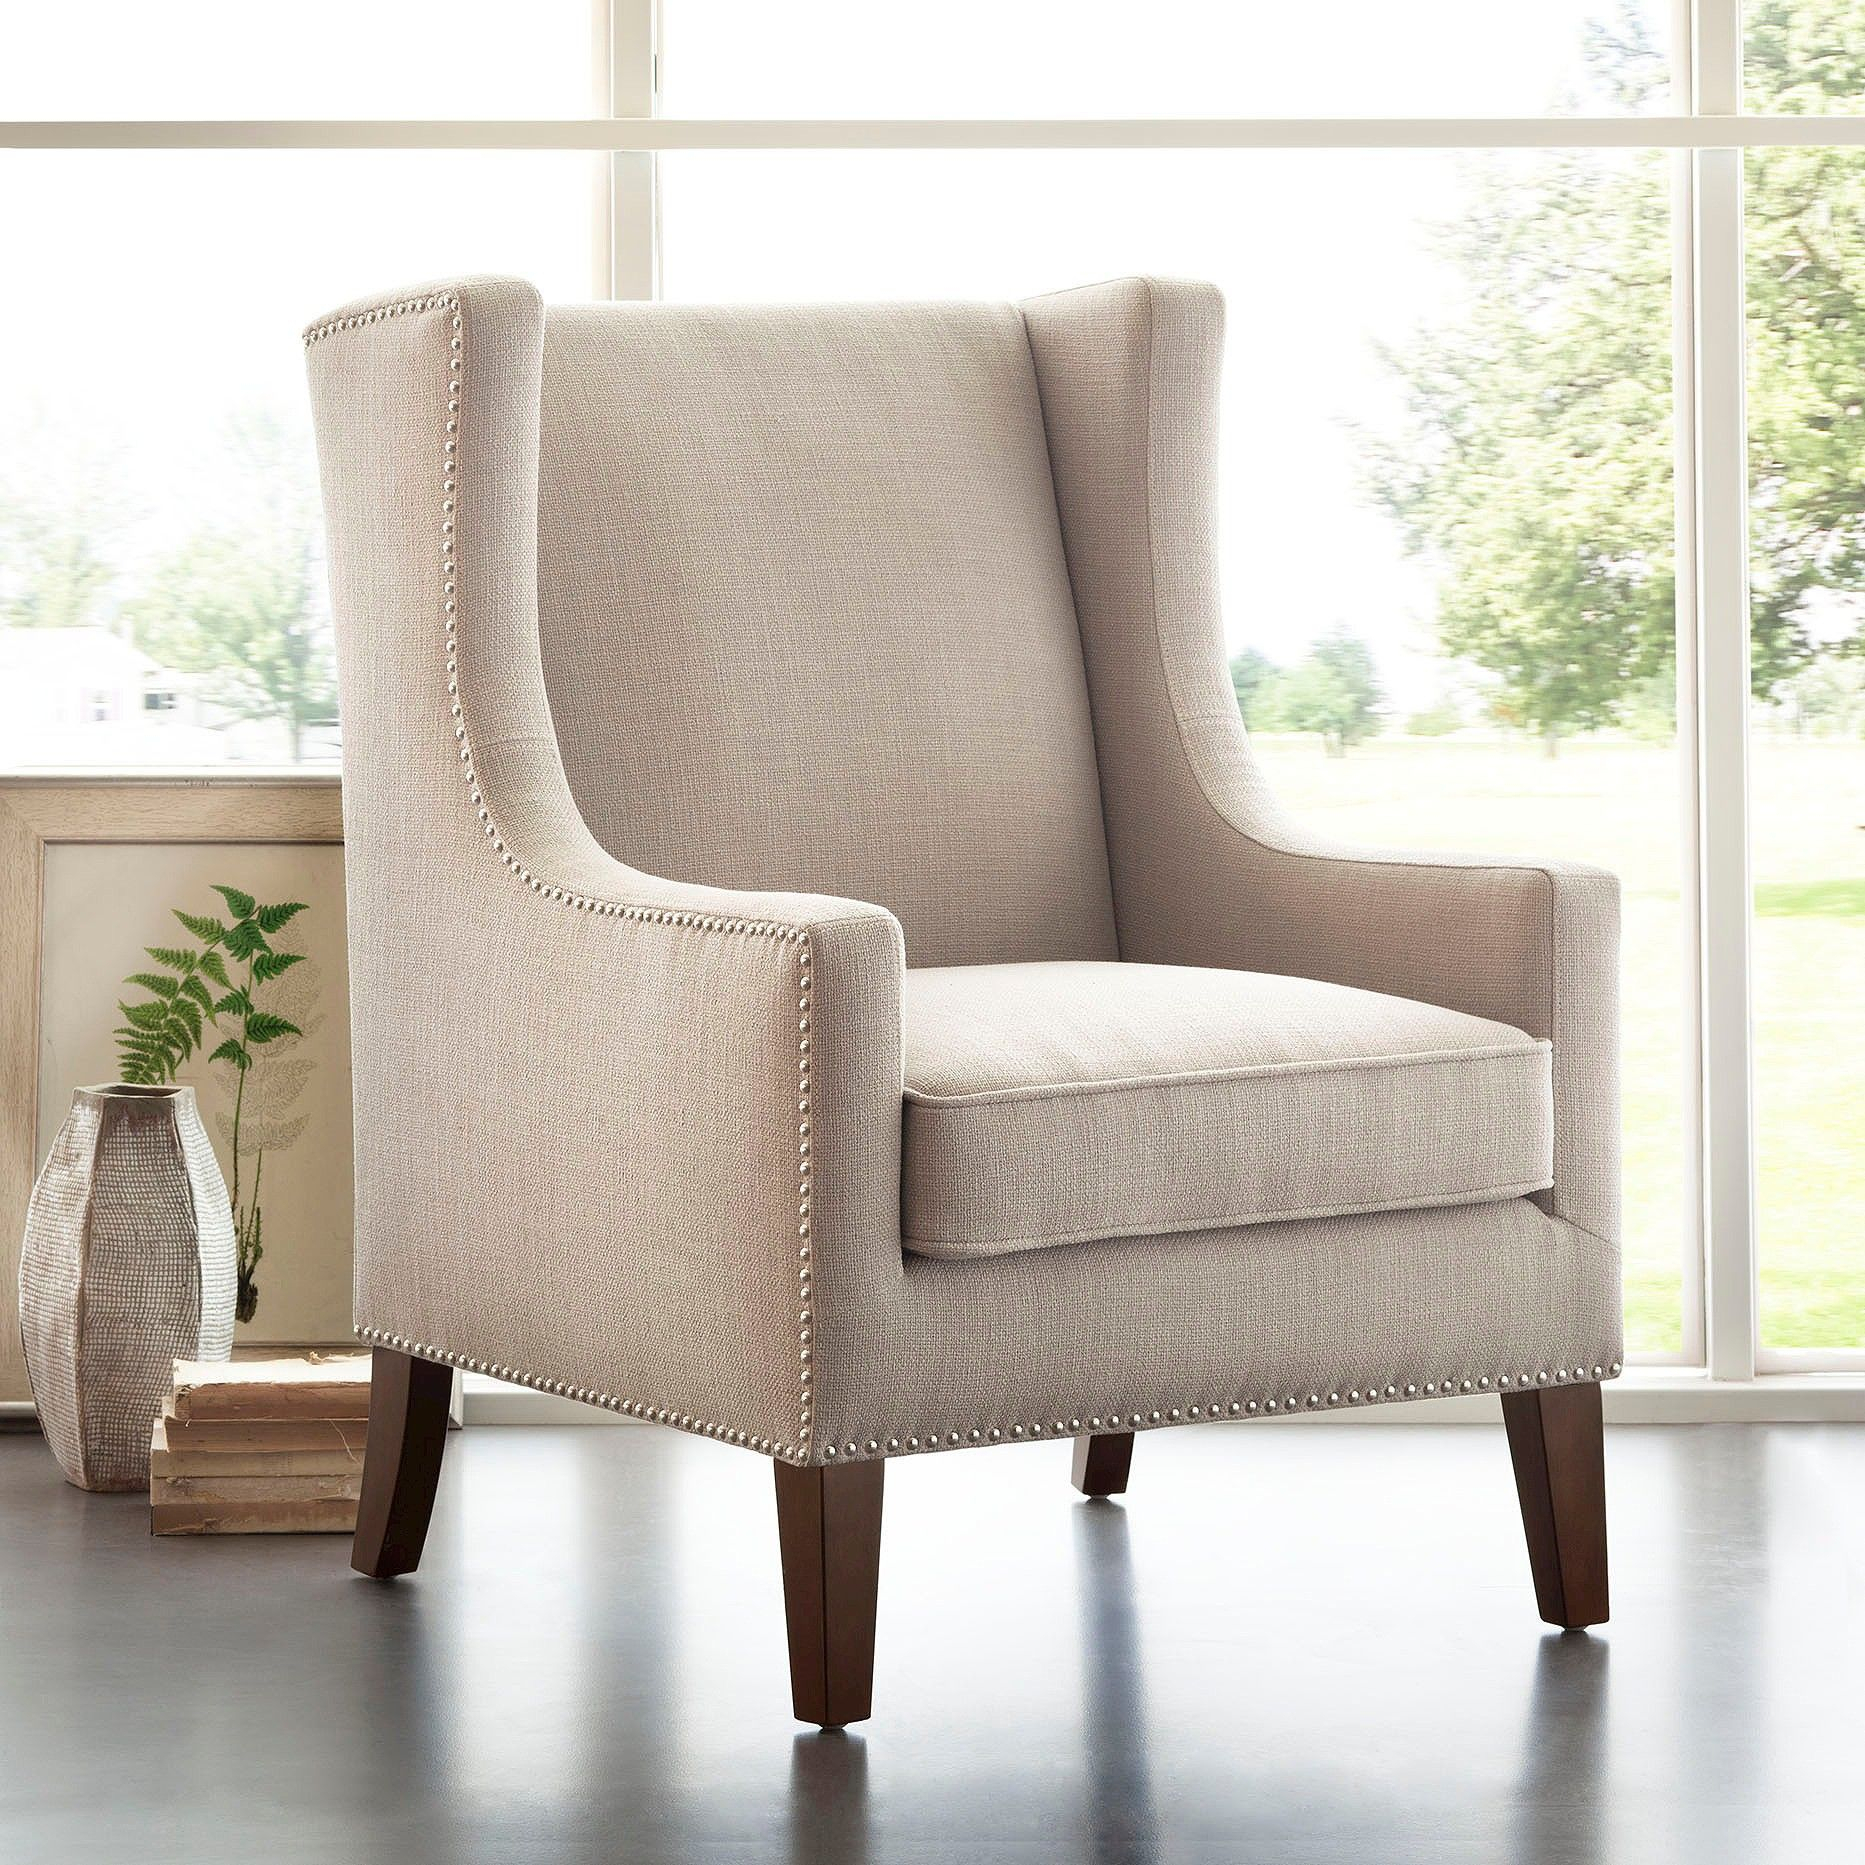 Colette Wing Chair Linen | Wingback Chair, Linen Wingback Intended For Galesville Tufted Polyester Wingback Chairs (View 7 of 15)